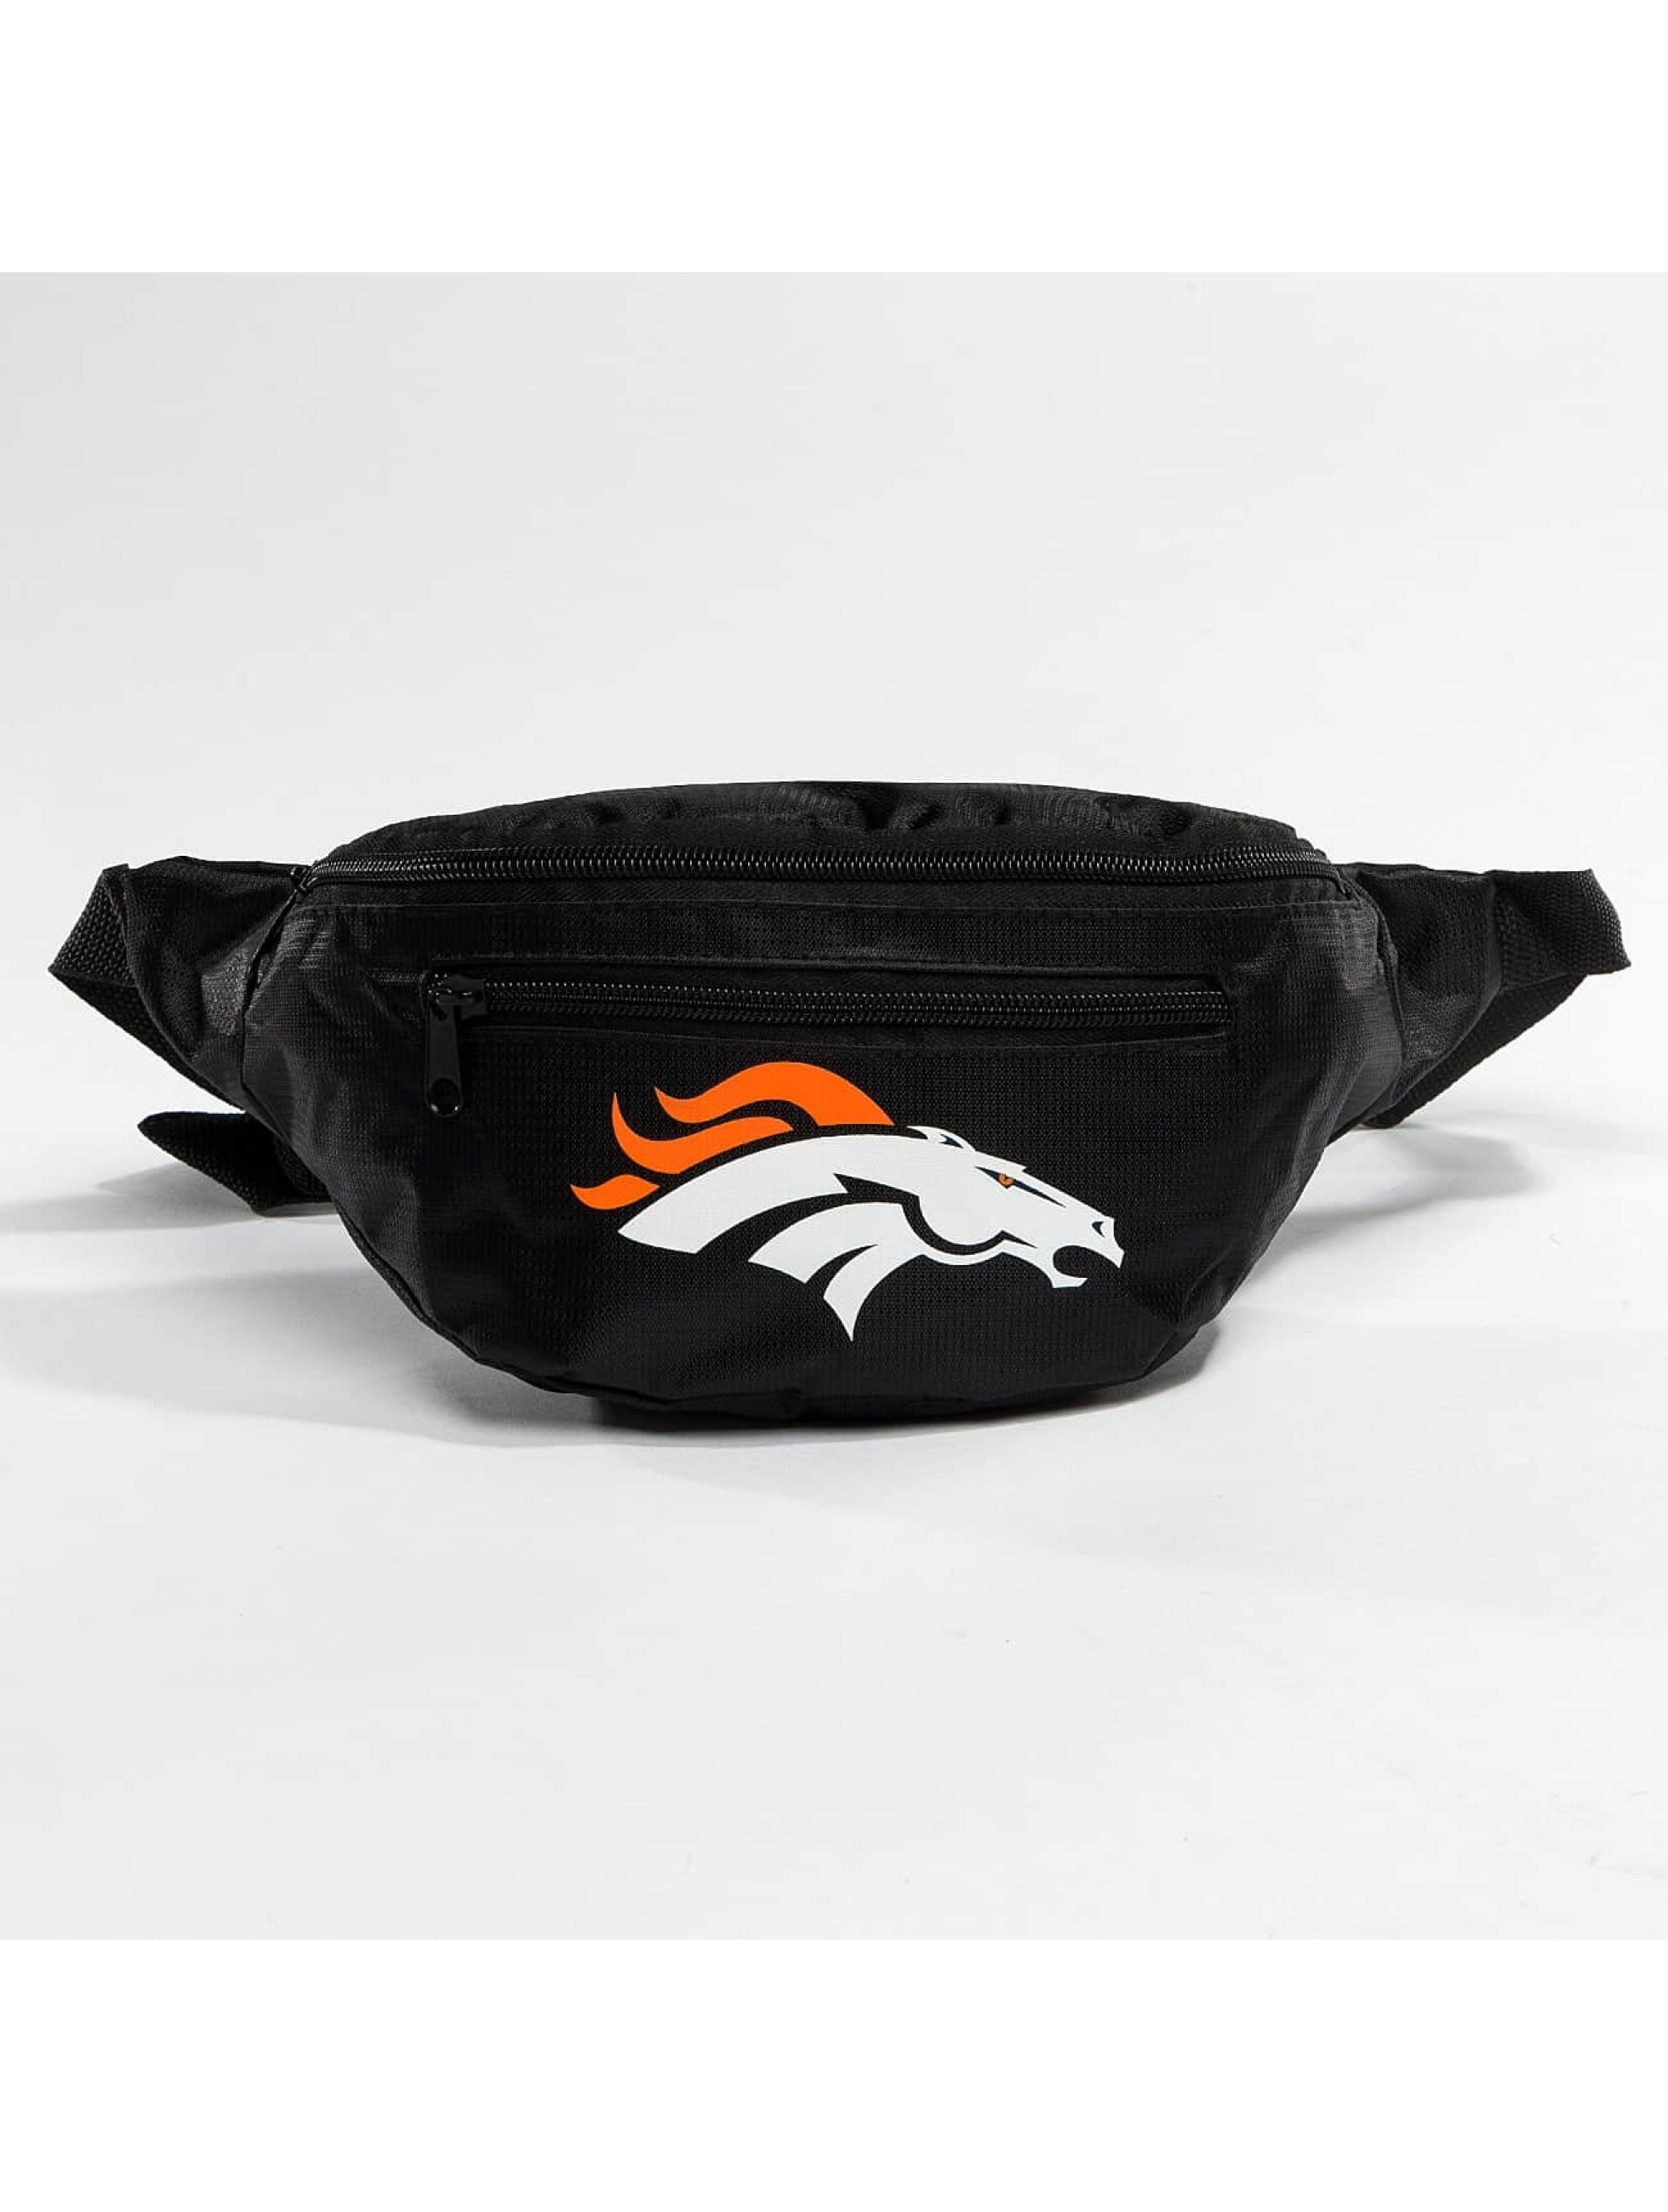 Forever Collectibles Bag NFL Denver Broncos black